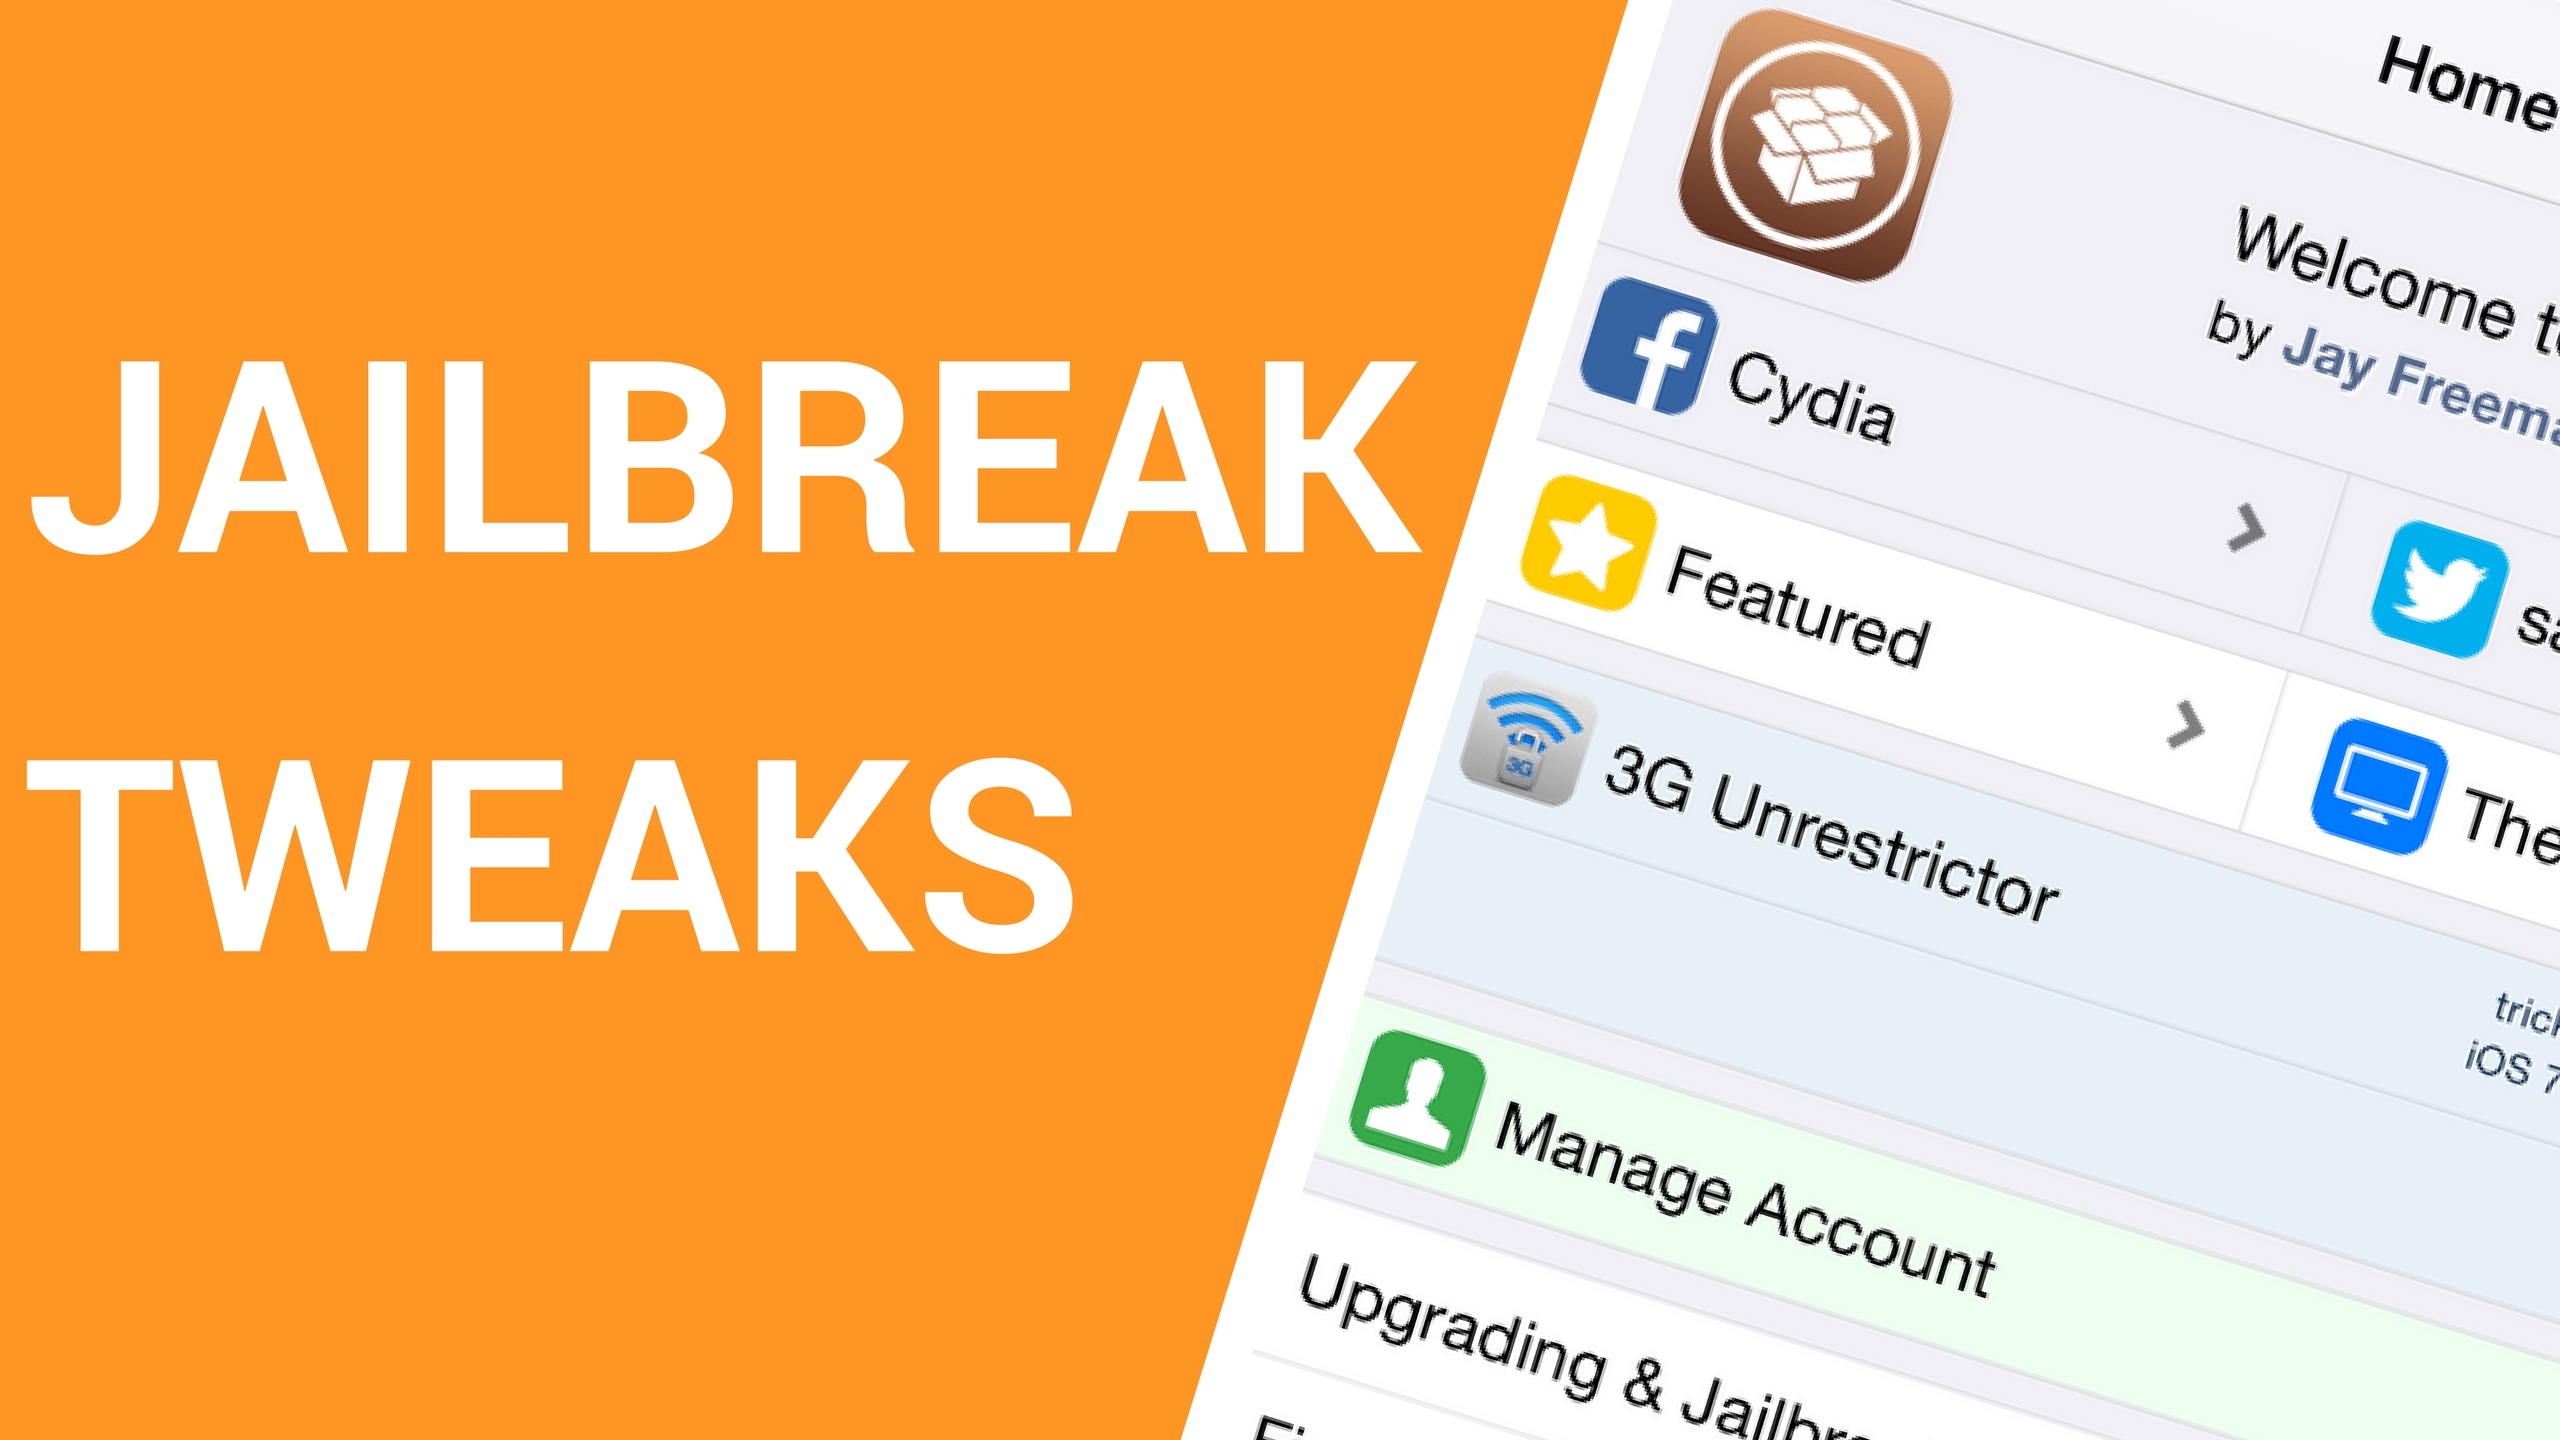 Jailbreak tweaks of the week: Dune, RePower XII, Vartaman, and more